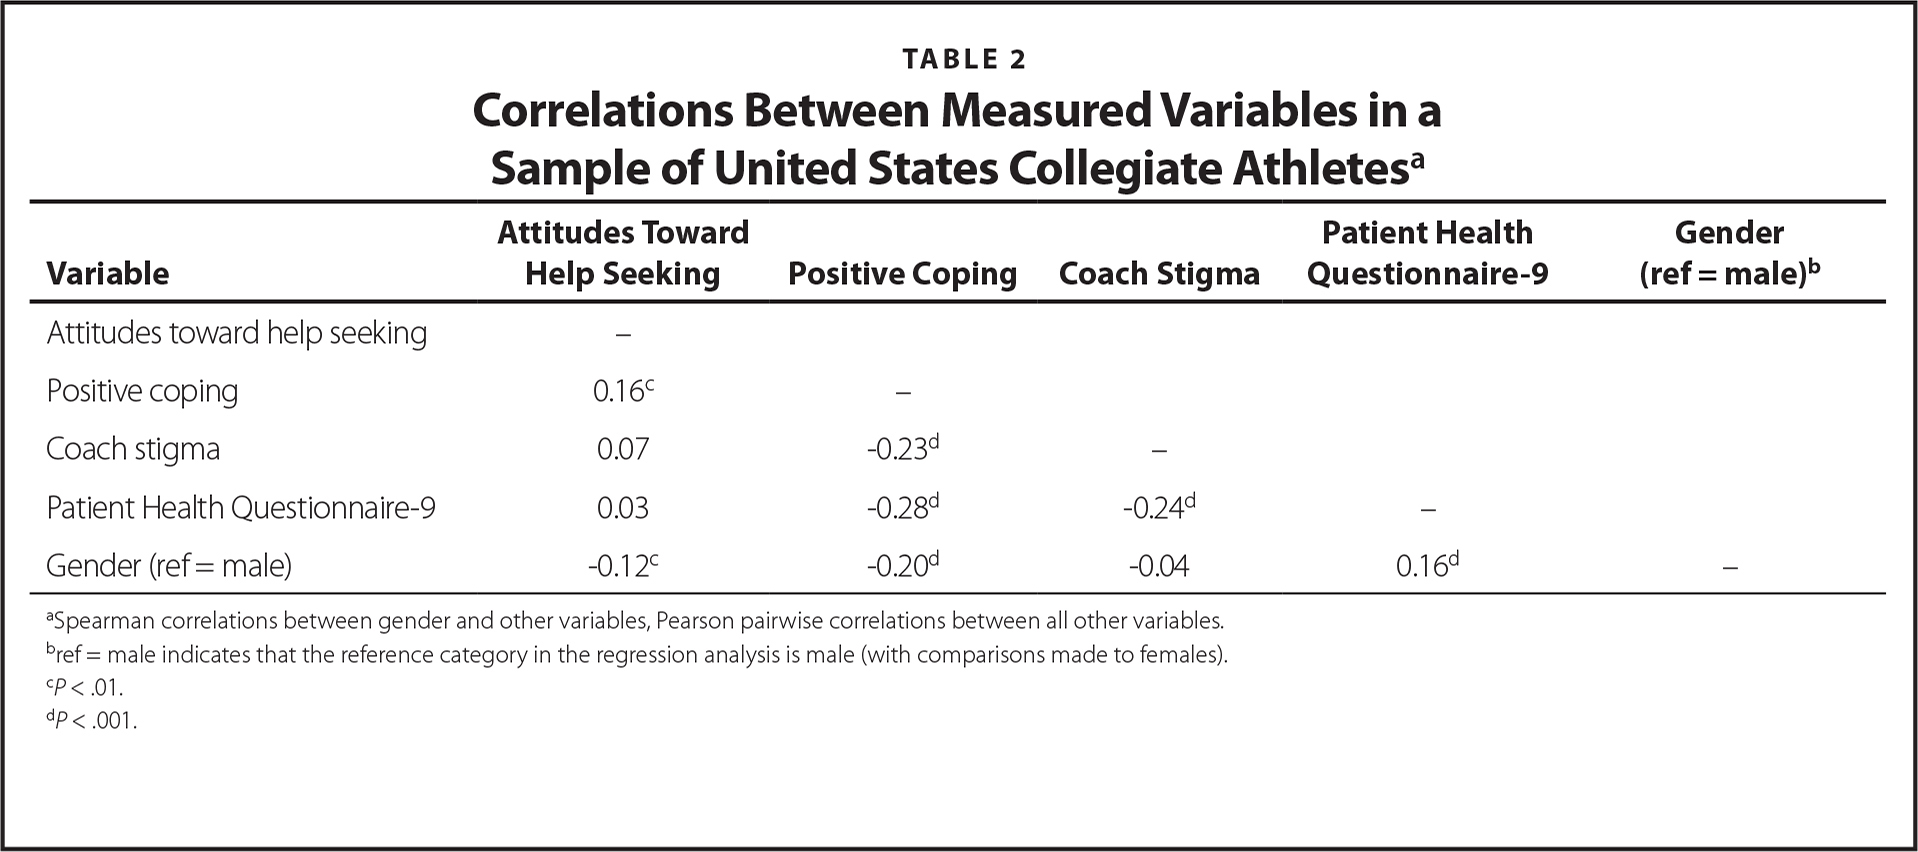 Correlations Between Measured Variables in a Sample of United States Collegiate Athletesa